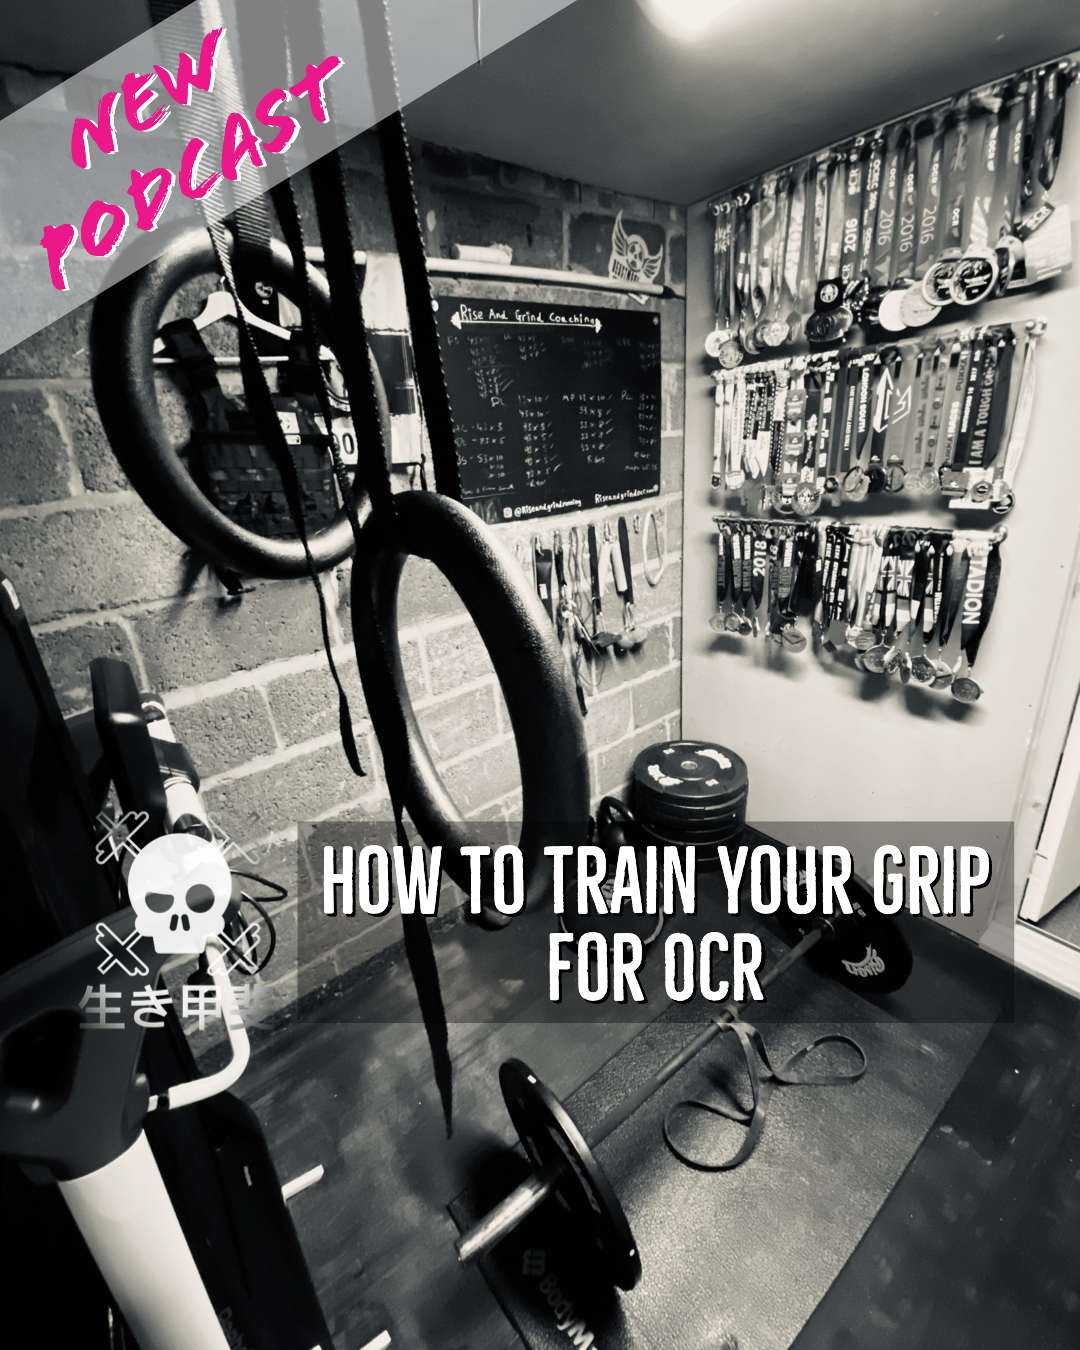 How To Train Your Grip For OCR